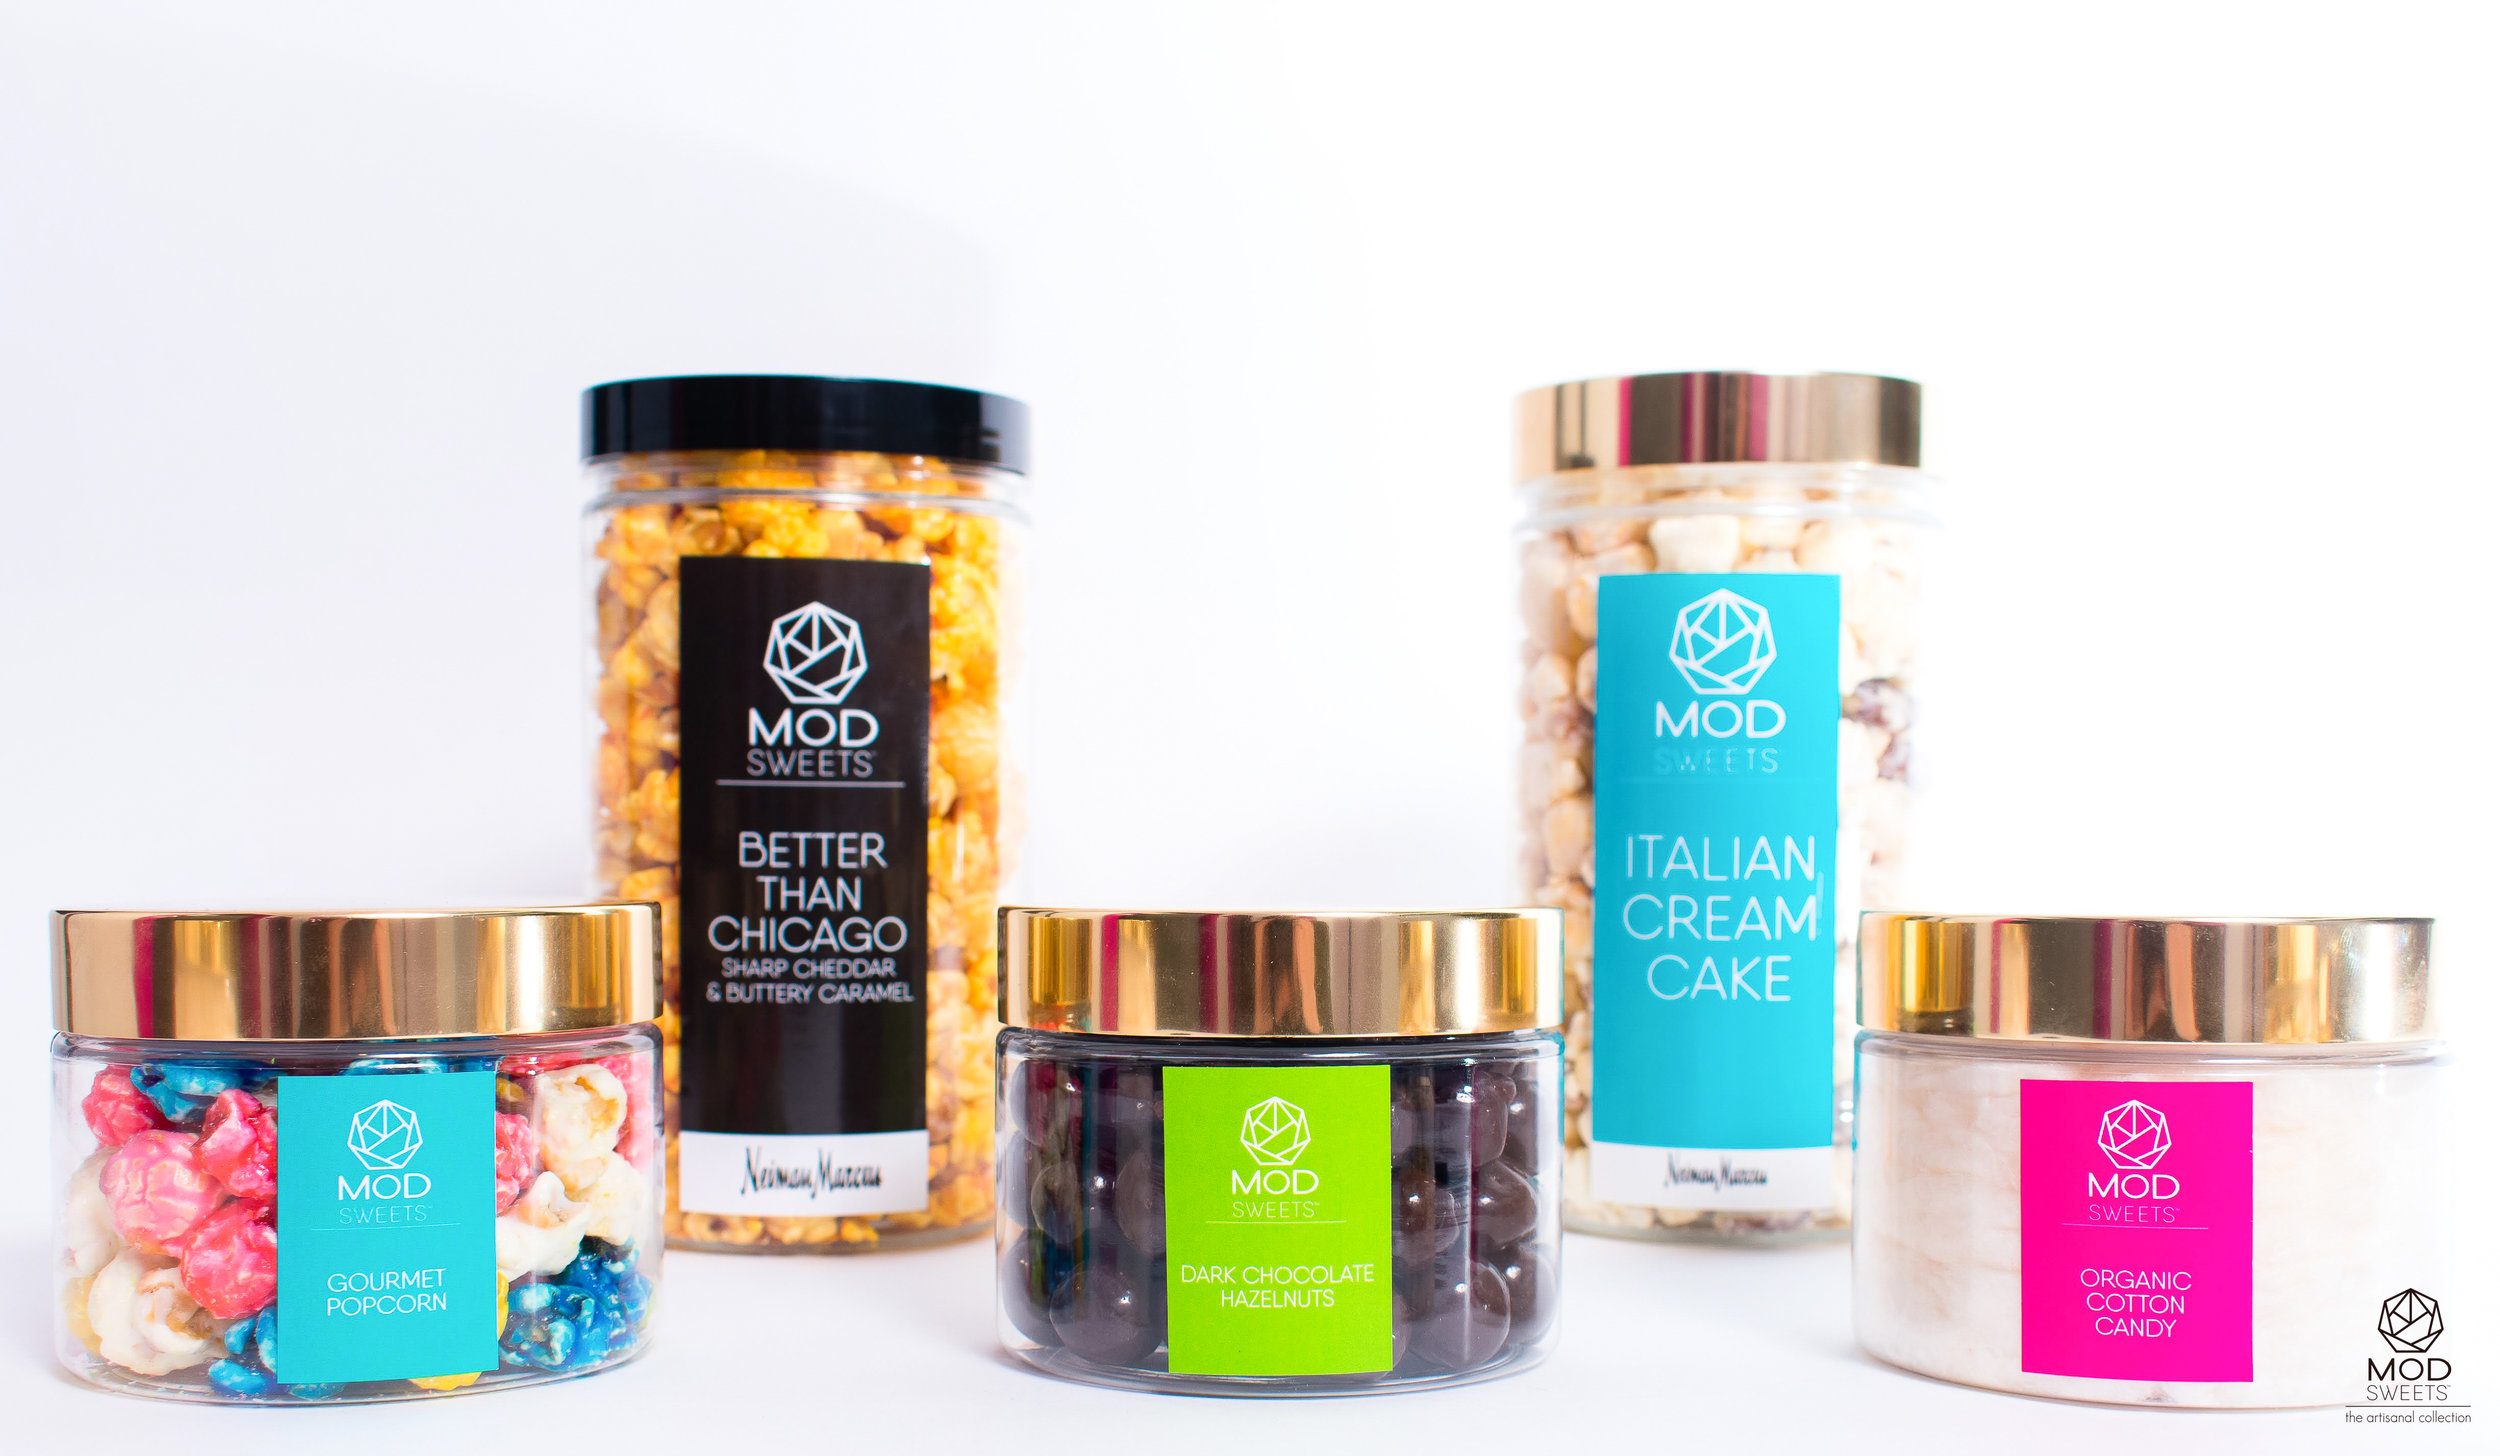 ModSweets - The Artisanal Collection